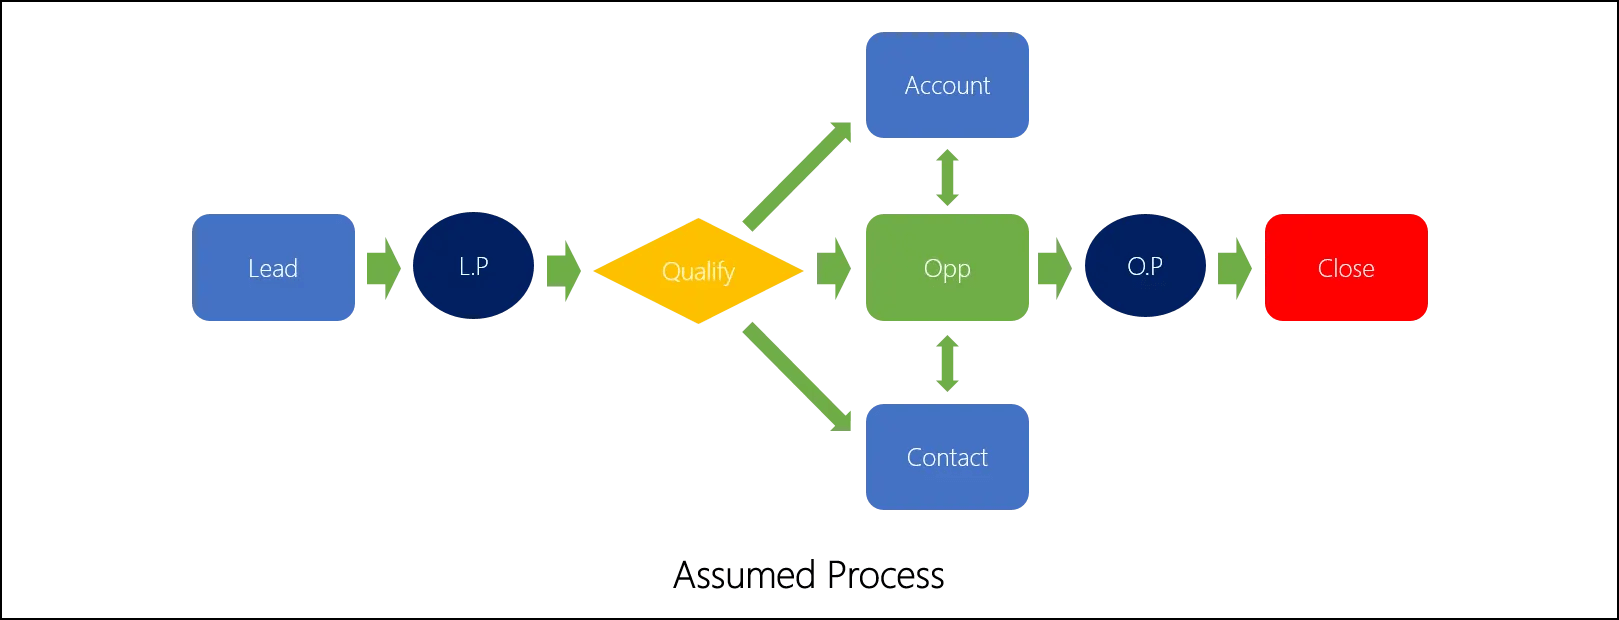 Dynamics 365 – Pivoting Sales for Account Based Marketing